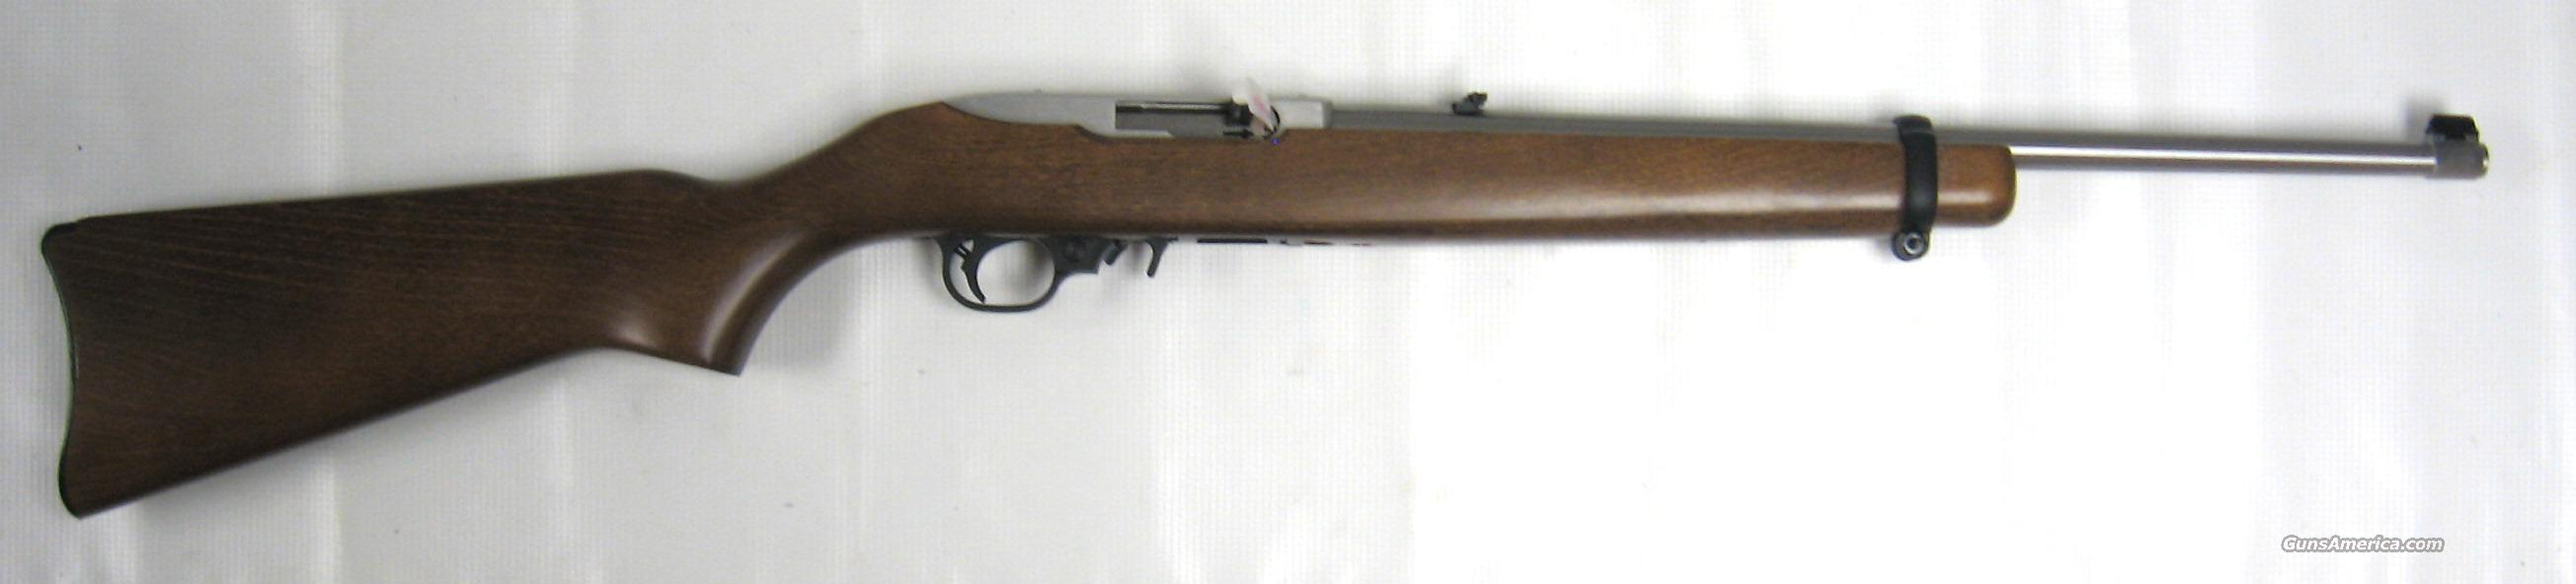 Ruger 10/22 Stainless   Guns > Rifles > Ruger Rifles > 10-22